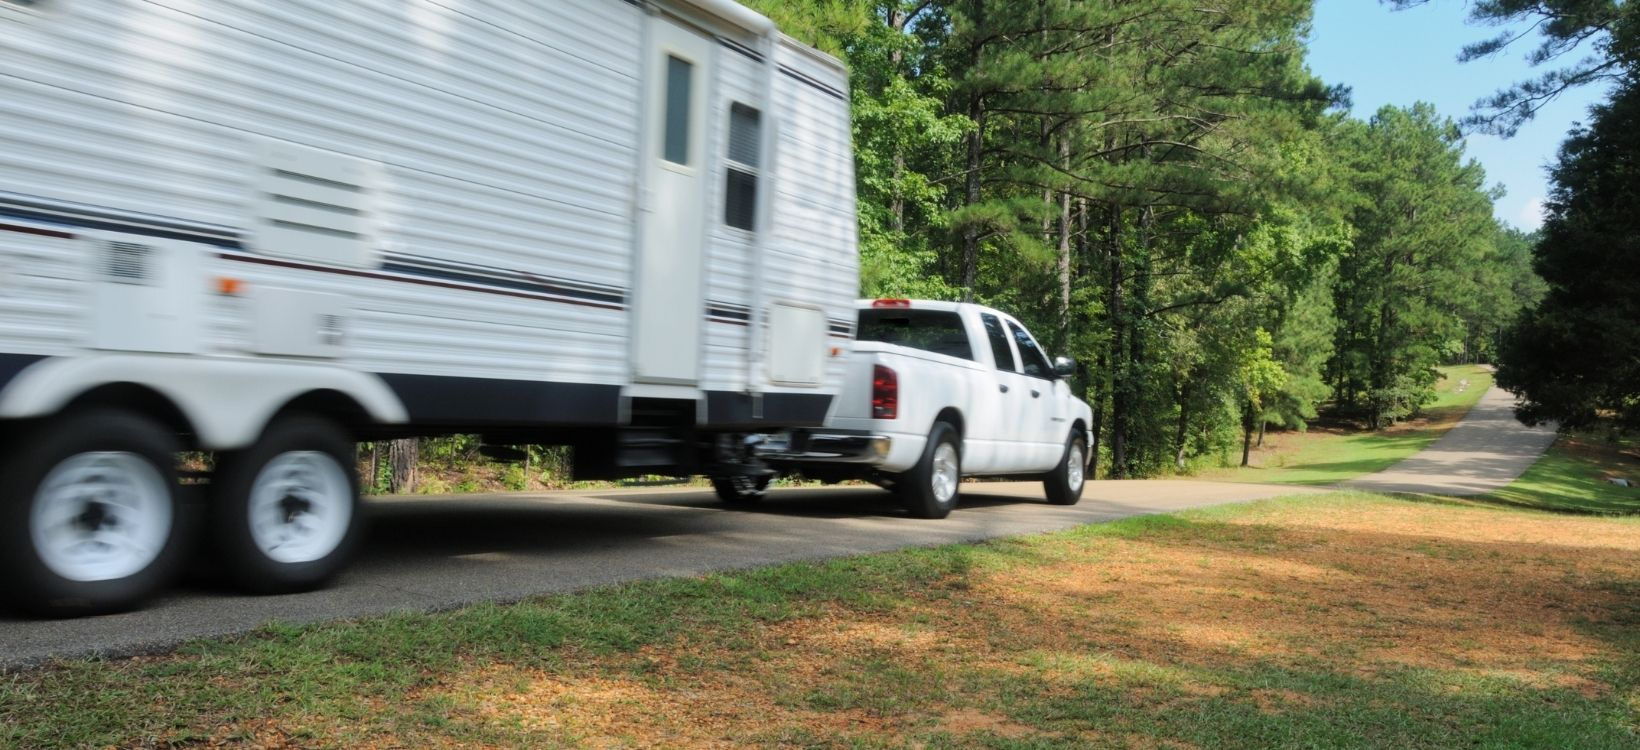 Towable RVs are one of many types of RVs on the road today.